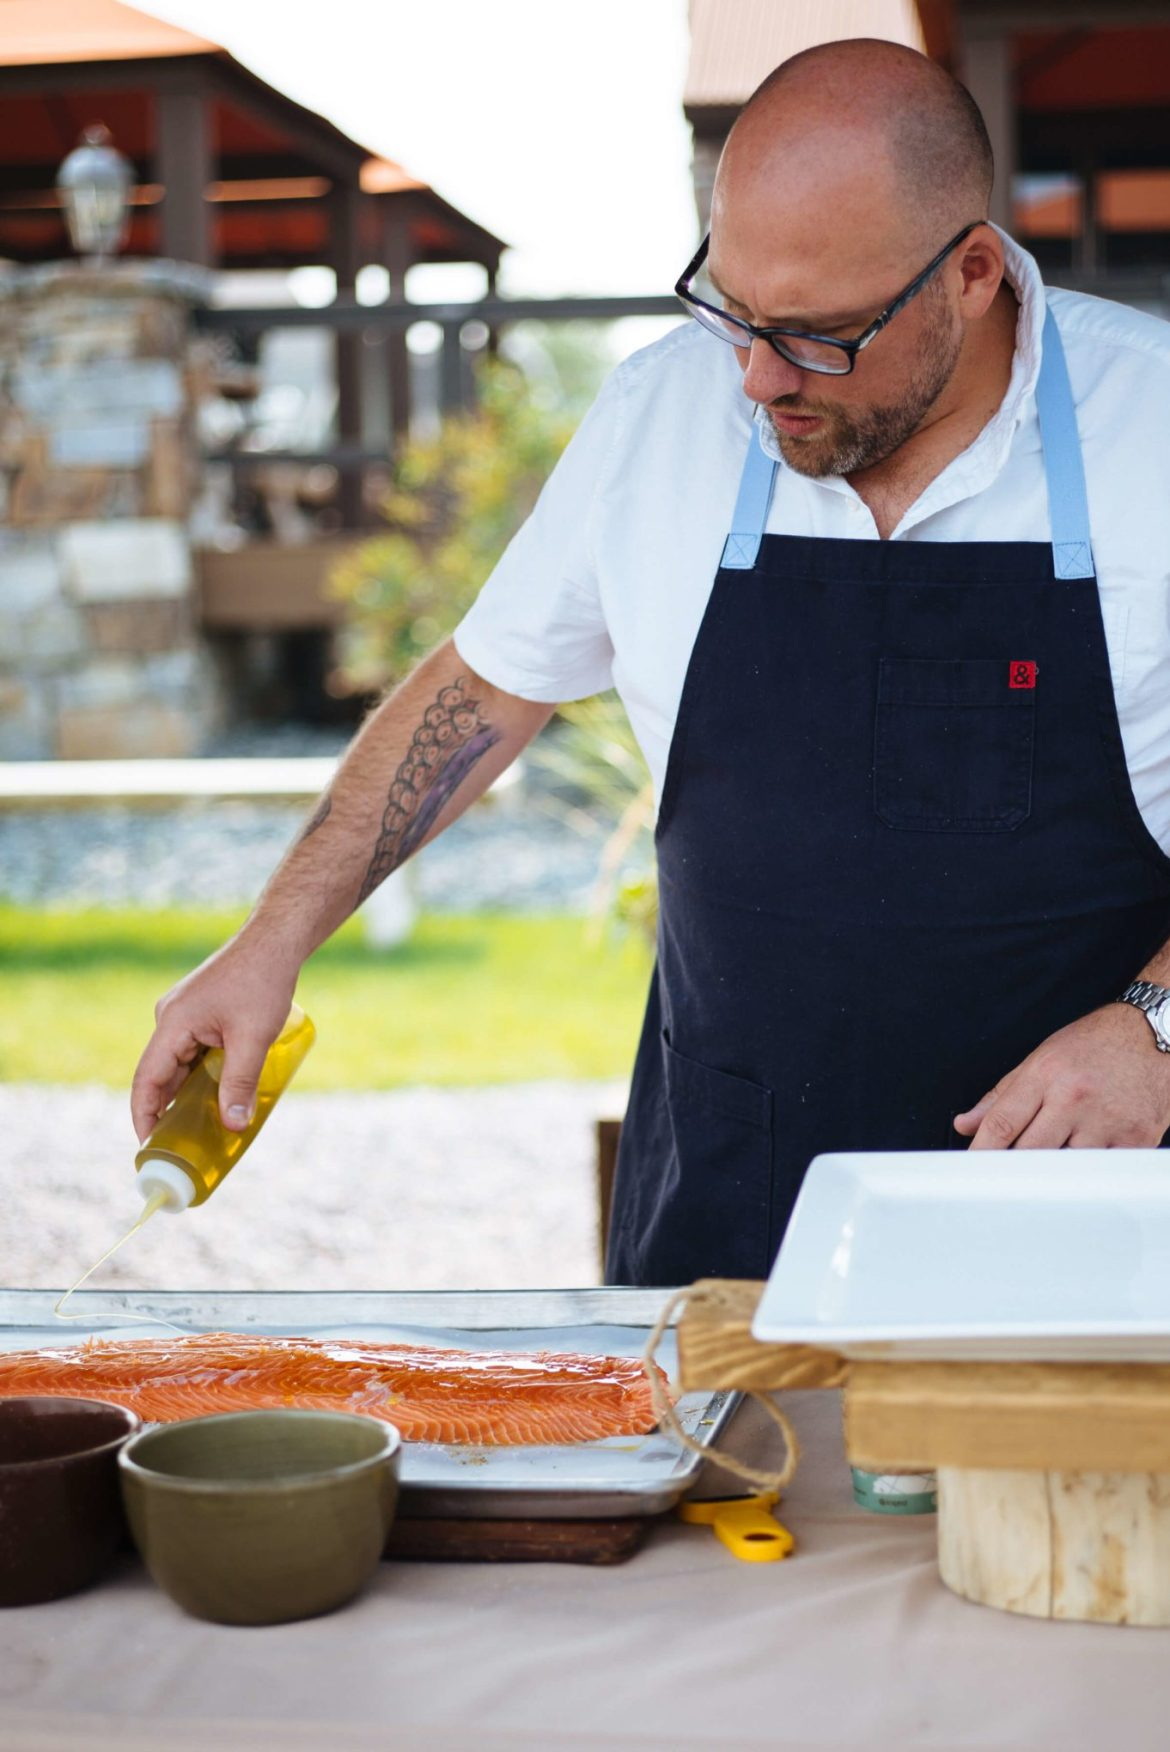 How to grill salmon with skin, oil is very important, how much time on the grill the resort at paws up, montana glamping, cookbook live, greg denton OX restaurant Portland, The Taste Edit